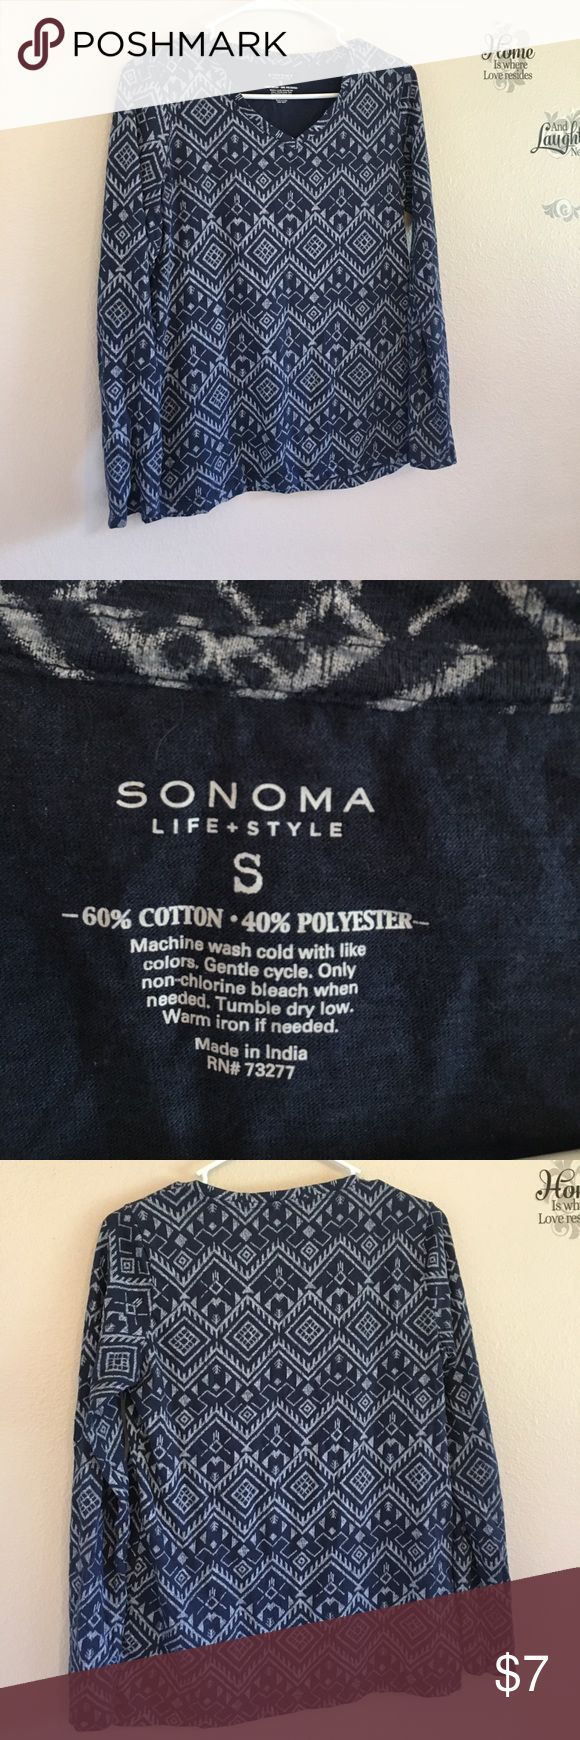 Women's Long sleeved tee by Sonoma This sweet long sleeved tee with Aztec print by Sonoma is a great addition to anyone's closet! Like new condition. Grab it while you can! Bundle any two items and get 10% off ! Sonoma Tops Tees - Long Sleeve